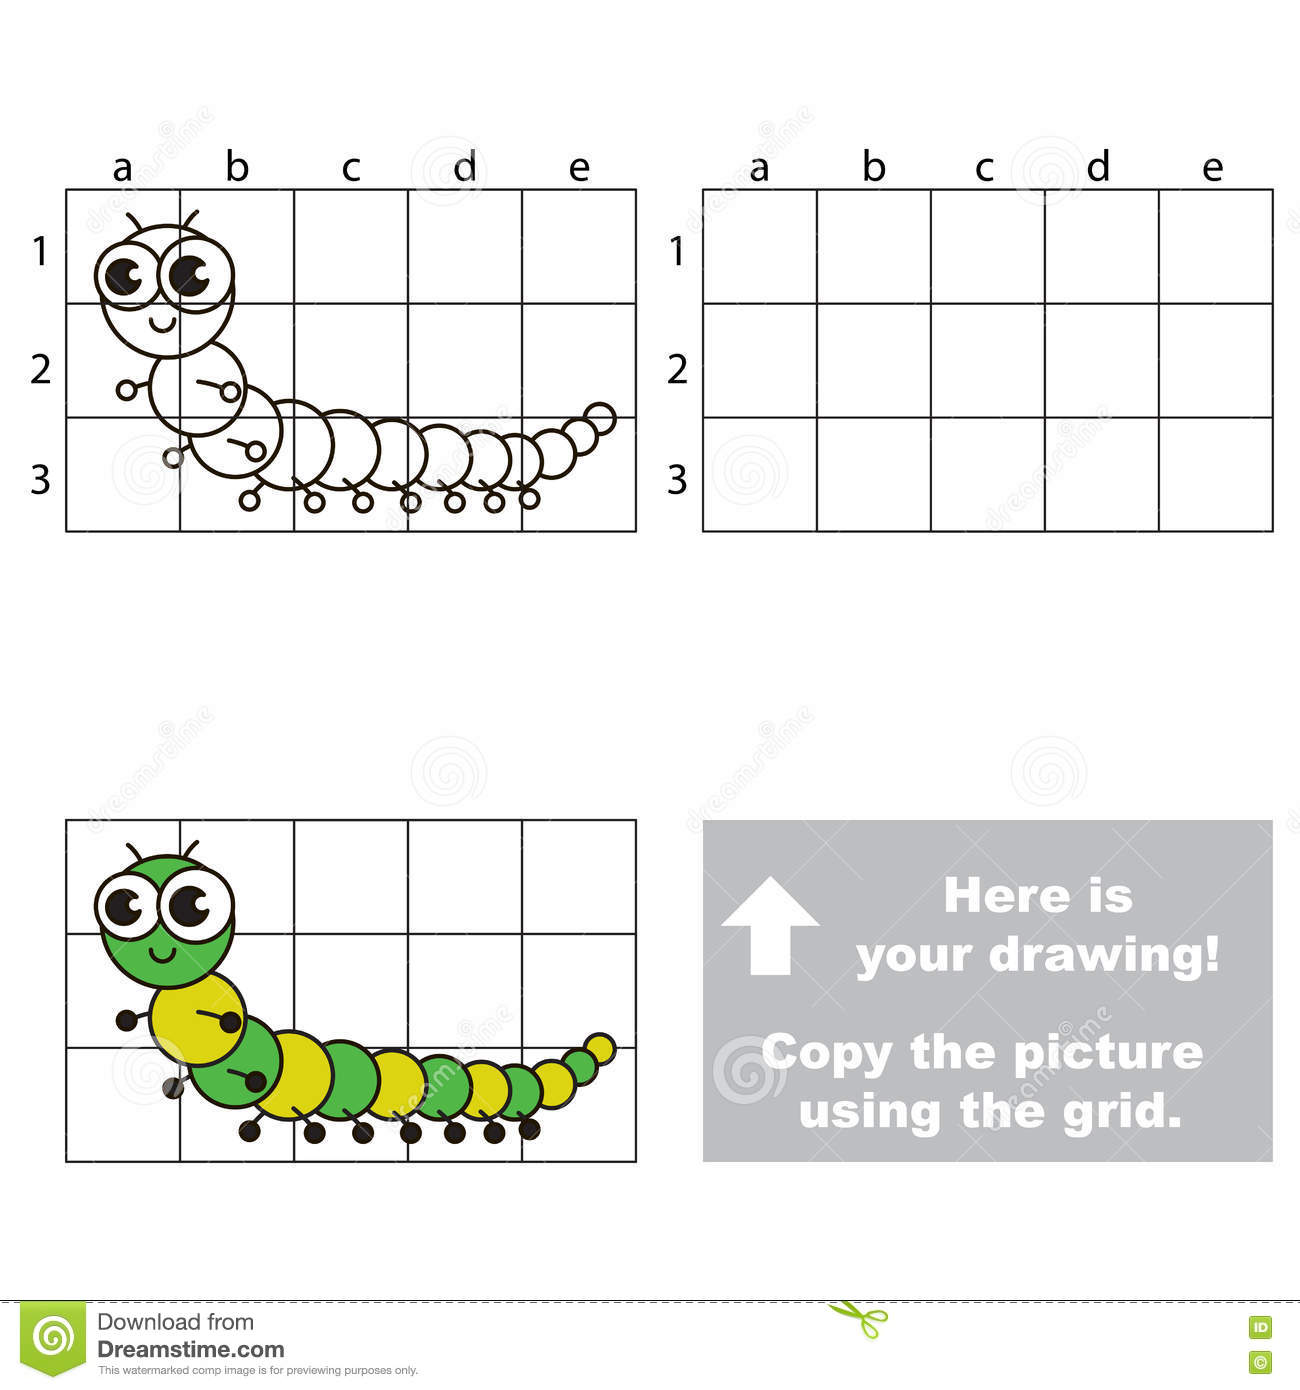 Drawing Lines Using Html : Millipede cartoons illustrations vector stock images